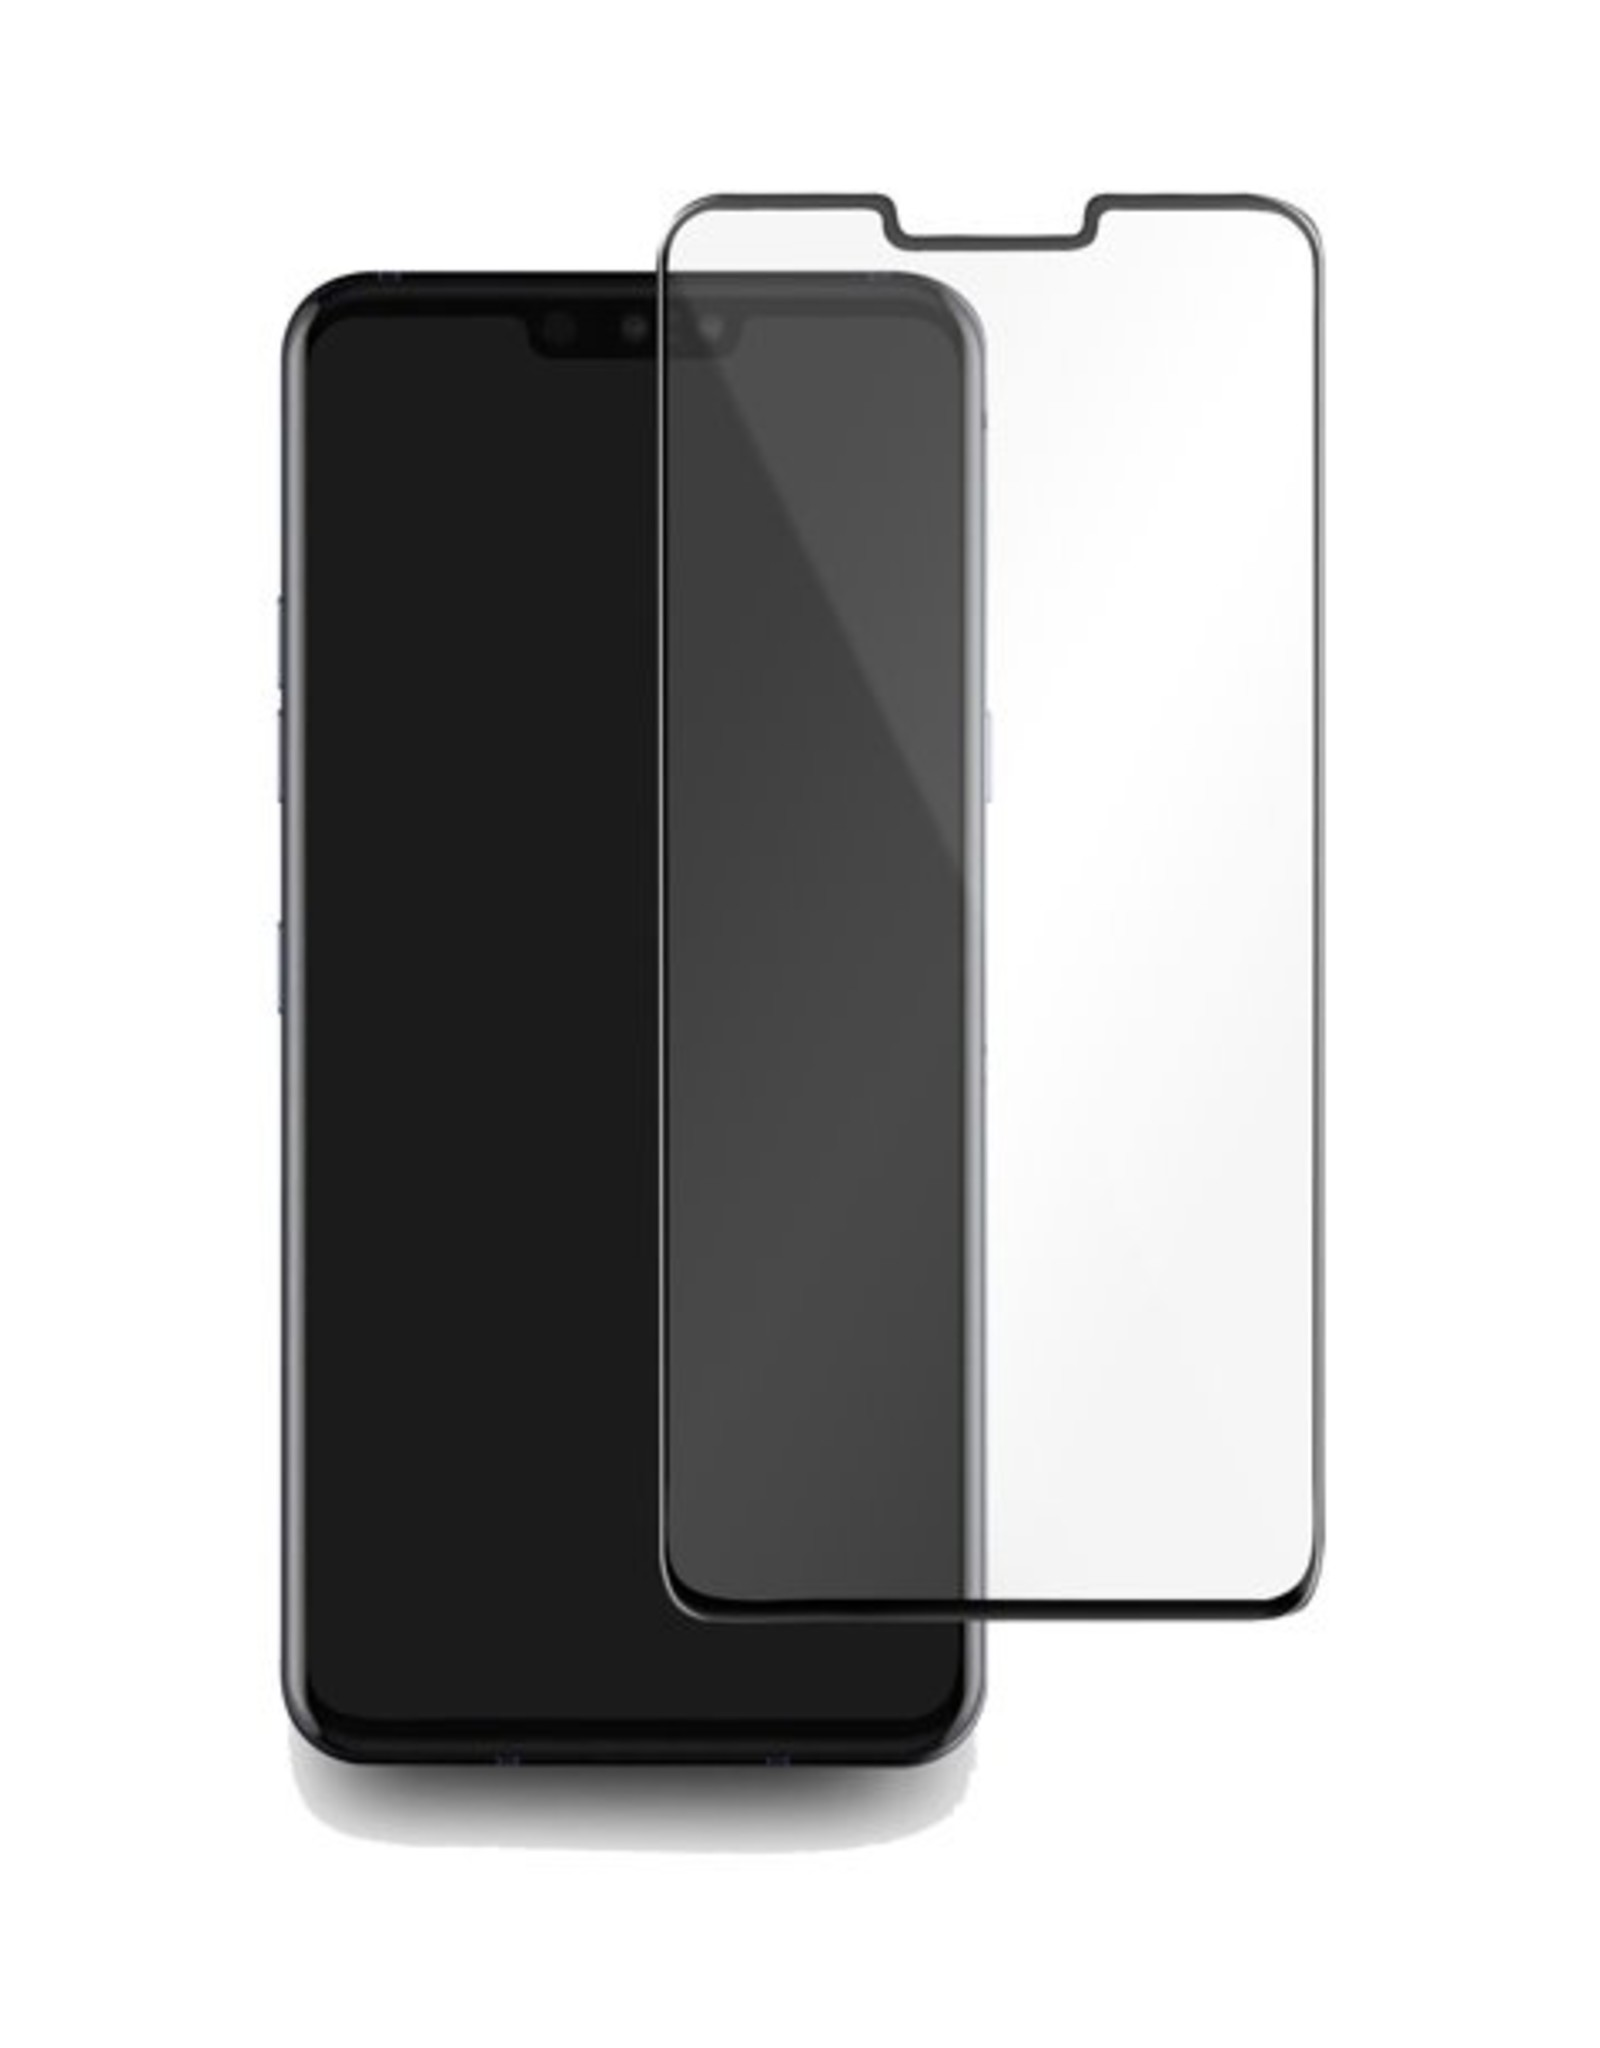 Blu Element Blu Element 3D Curved Glass Screen Protector for LG G8 ThinQ 118-2091